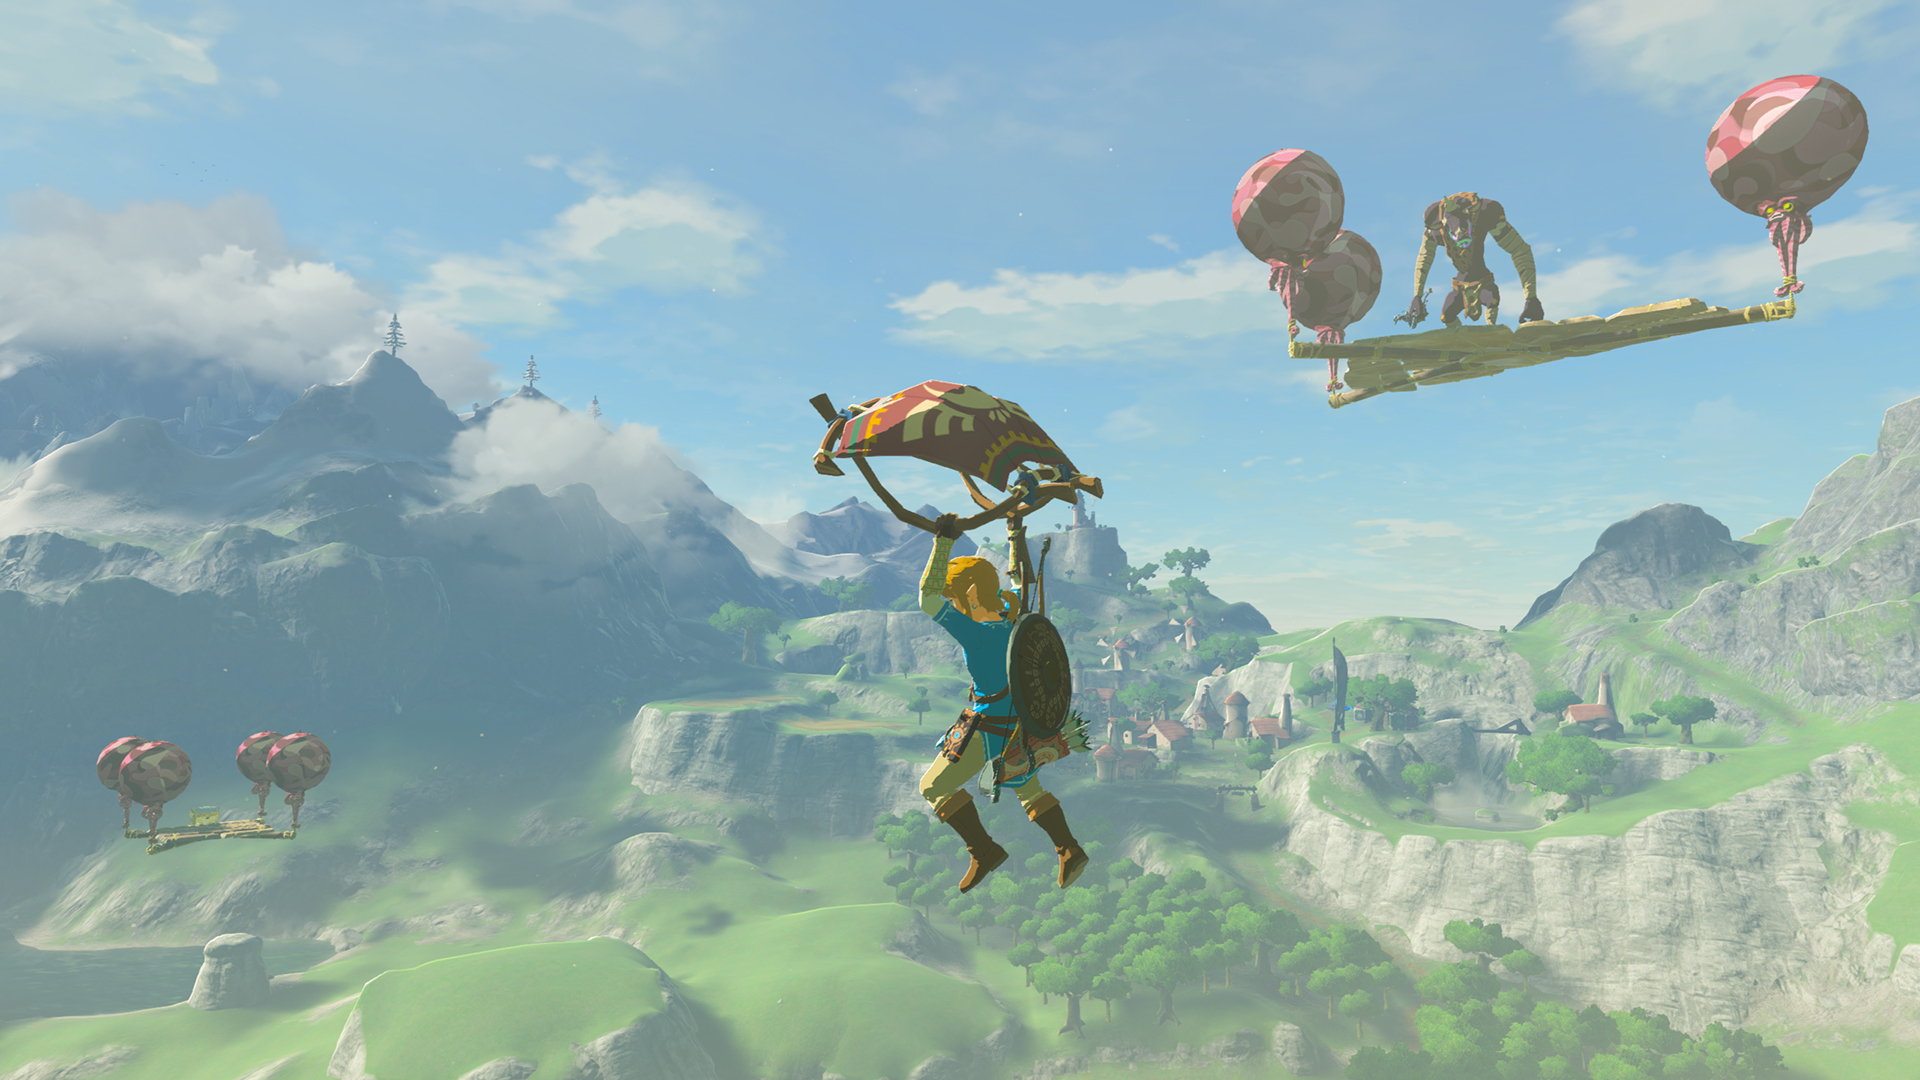 The Legend of Zelda: Breath of the Wild is already considered one of the most thrilling games in The Legend of Zelda series, and fans looking for a challenge are in for a treat with the new Hard Mode. (Graphic: Business Wire)